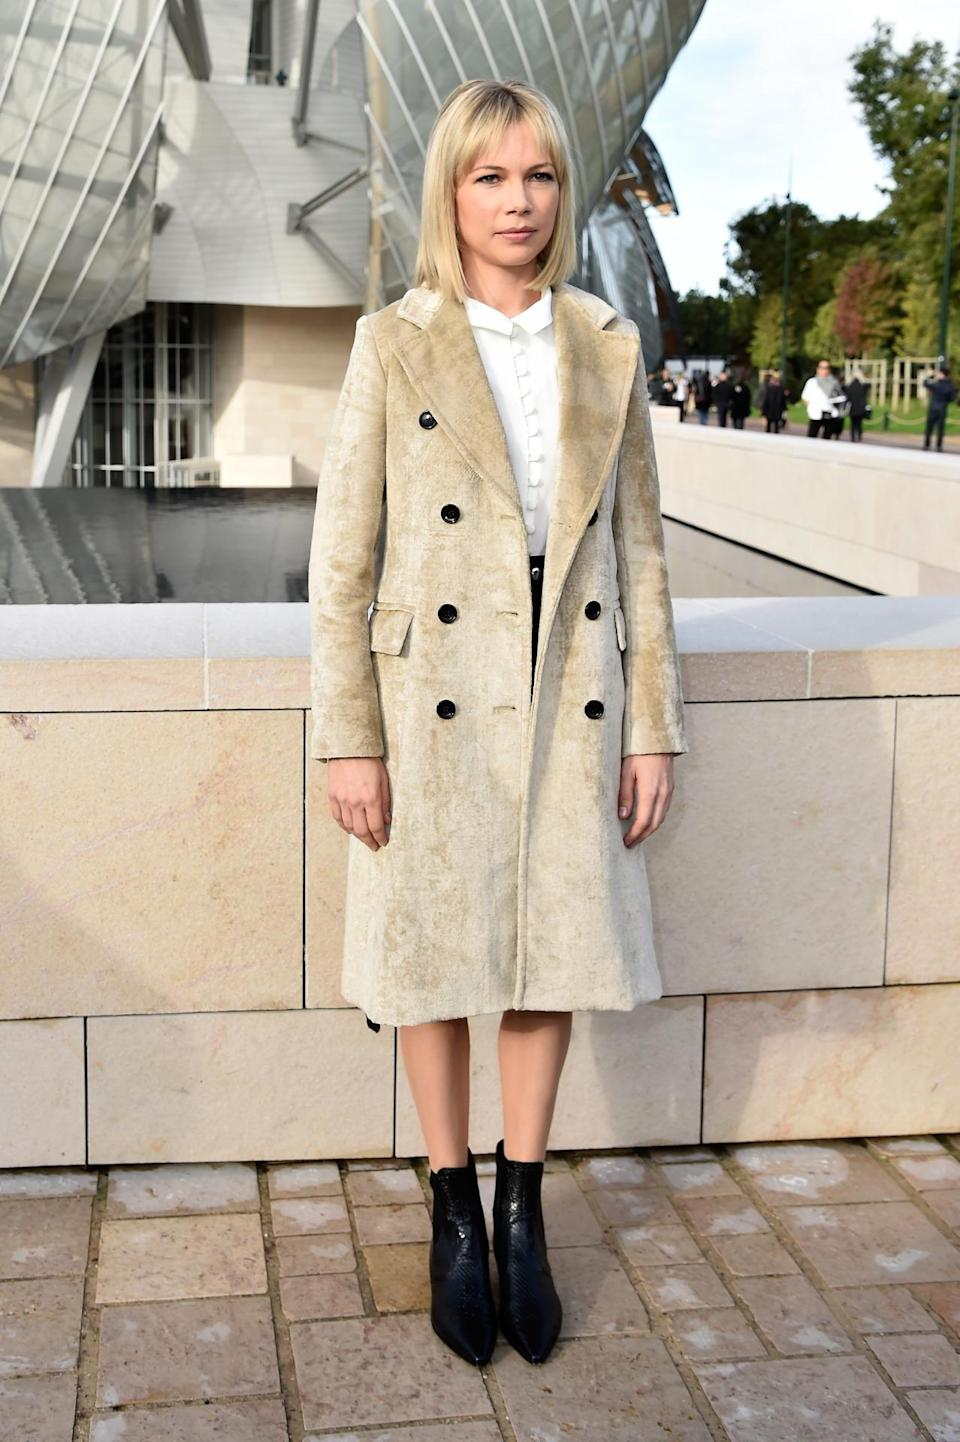 <p>Williams, who's also the face of Louis Vuitton's handbag line, wore a full look by the label to support her pal (and LV creative director) Nicolas Ghesquière at his Spring 2016 show in Paris. <i>Photo: Getty Images</i></p>